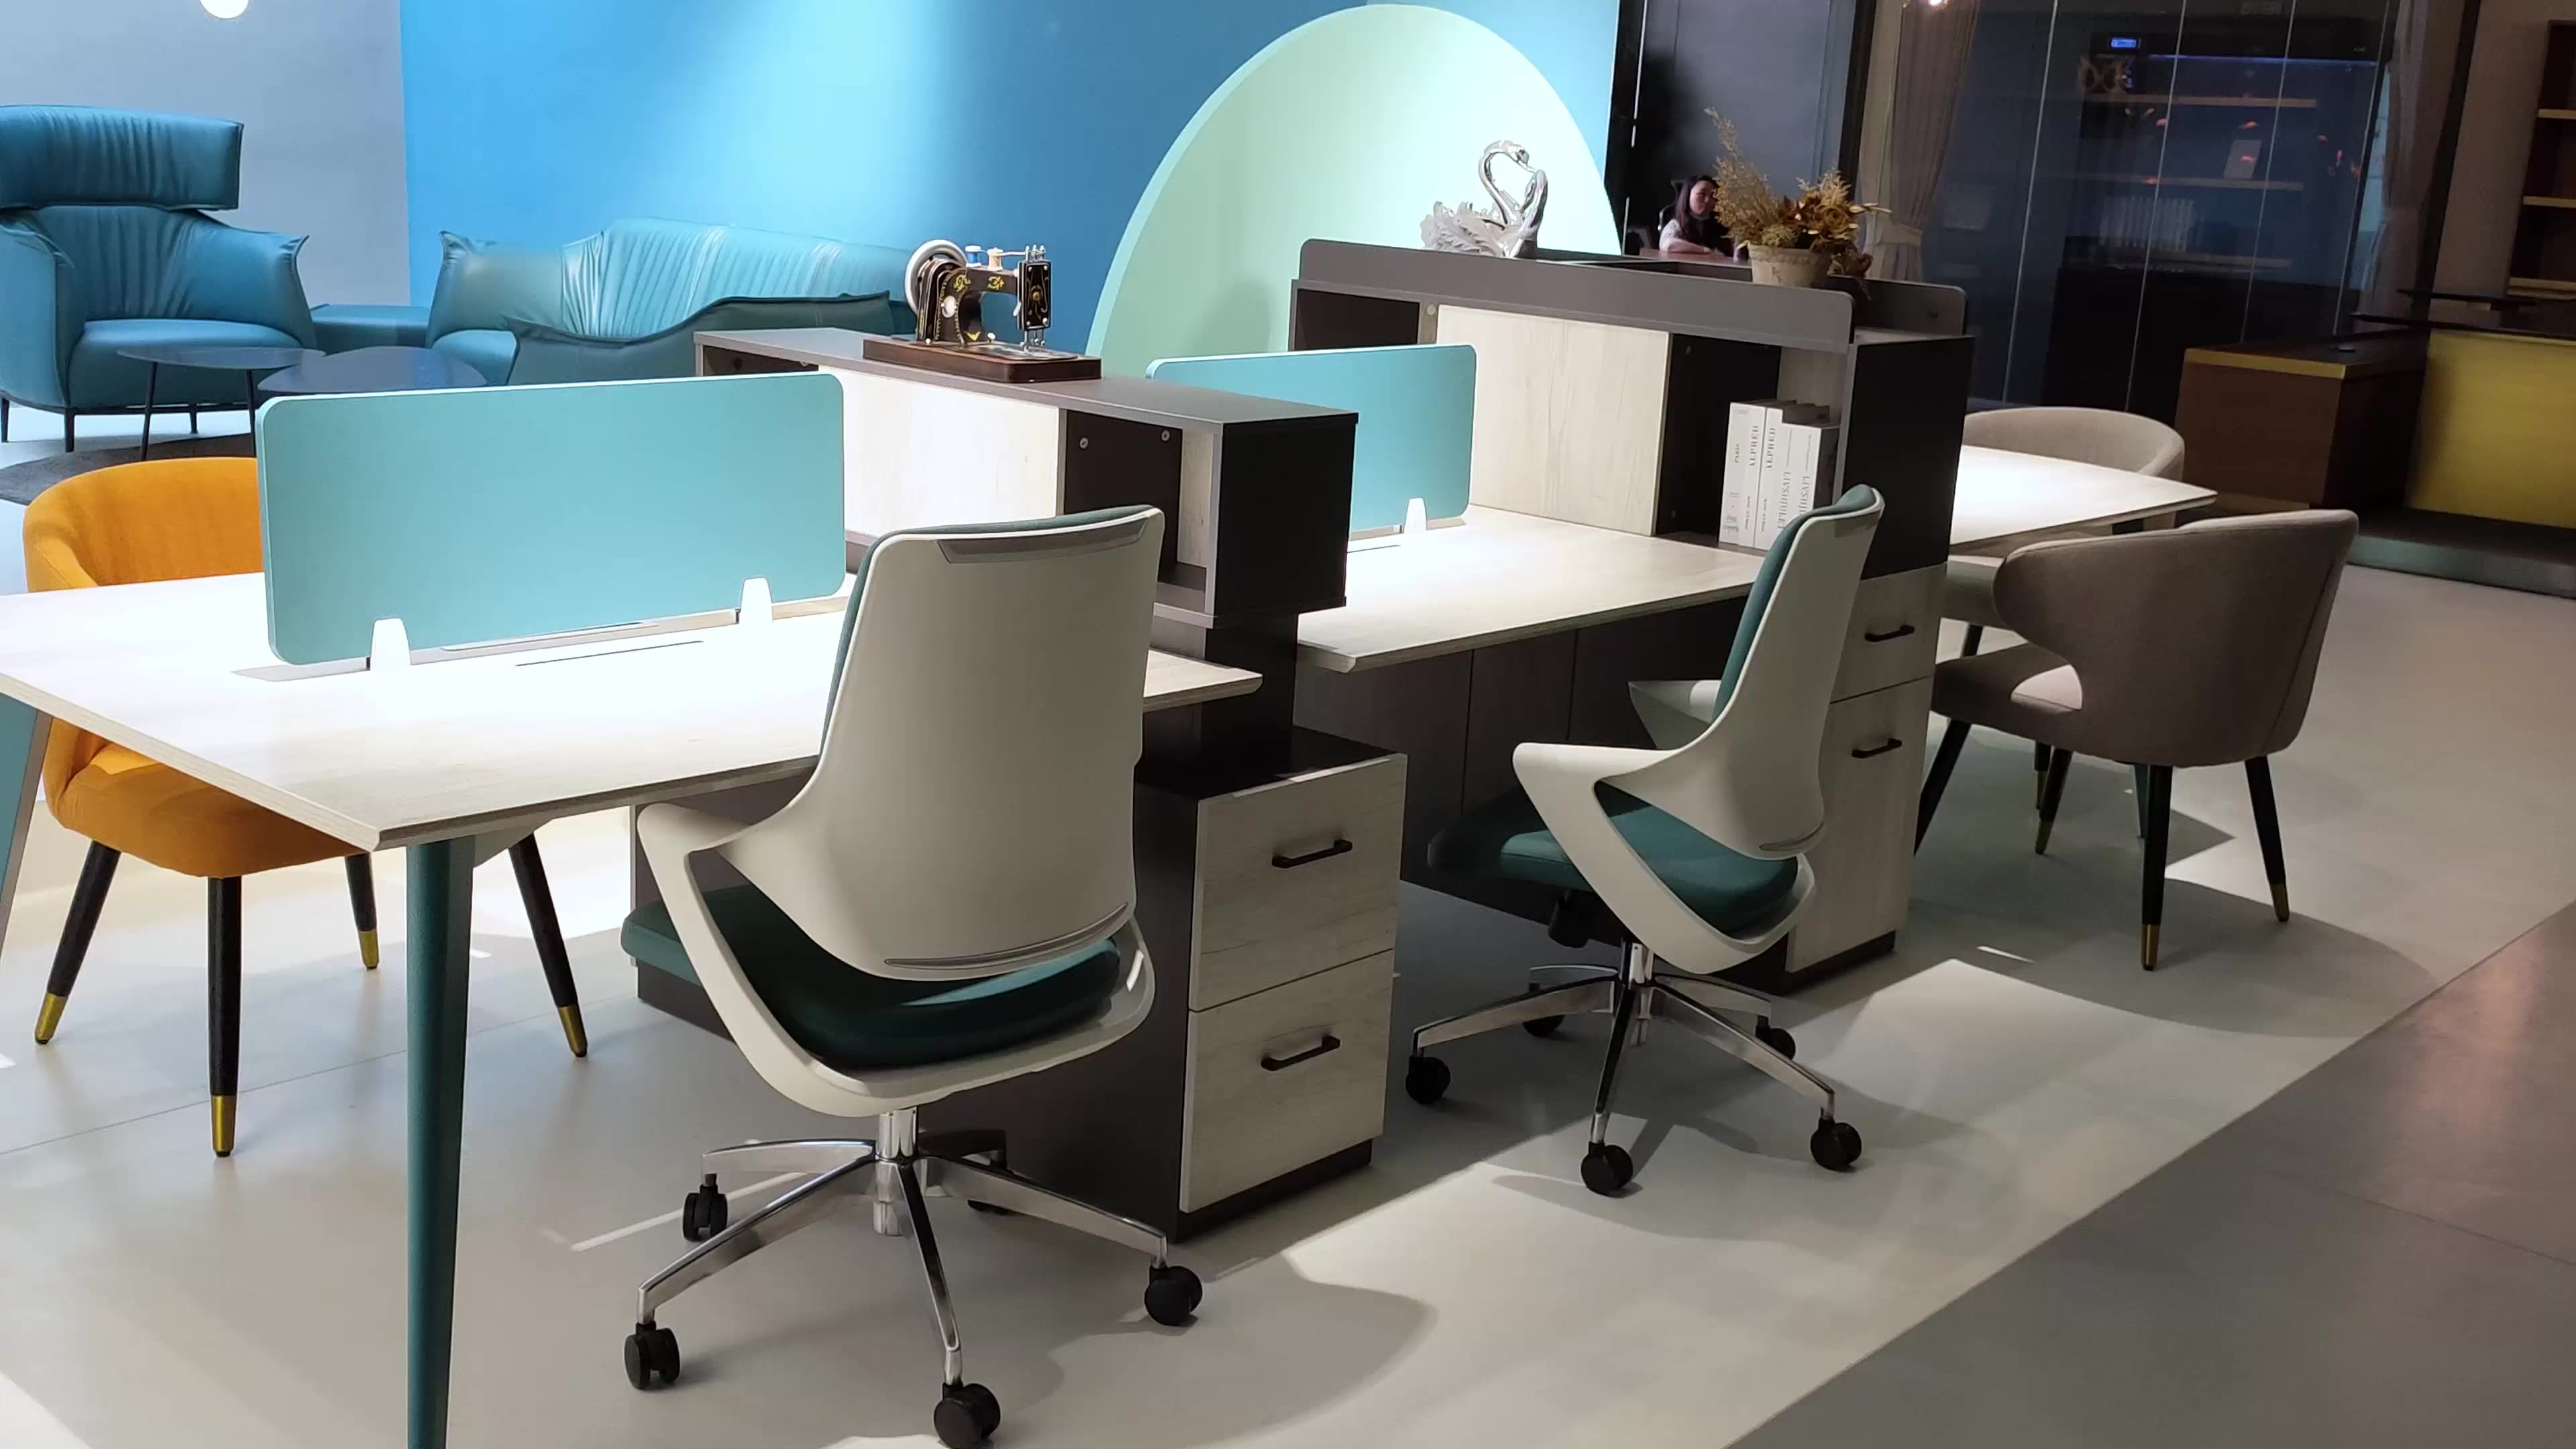 Import Material Arrangement Cool Cubicle Gadgets Modern Office